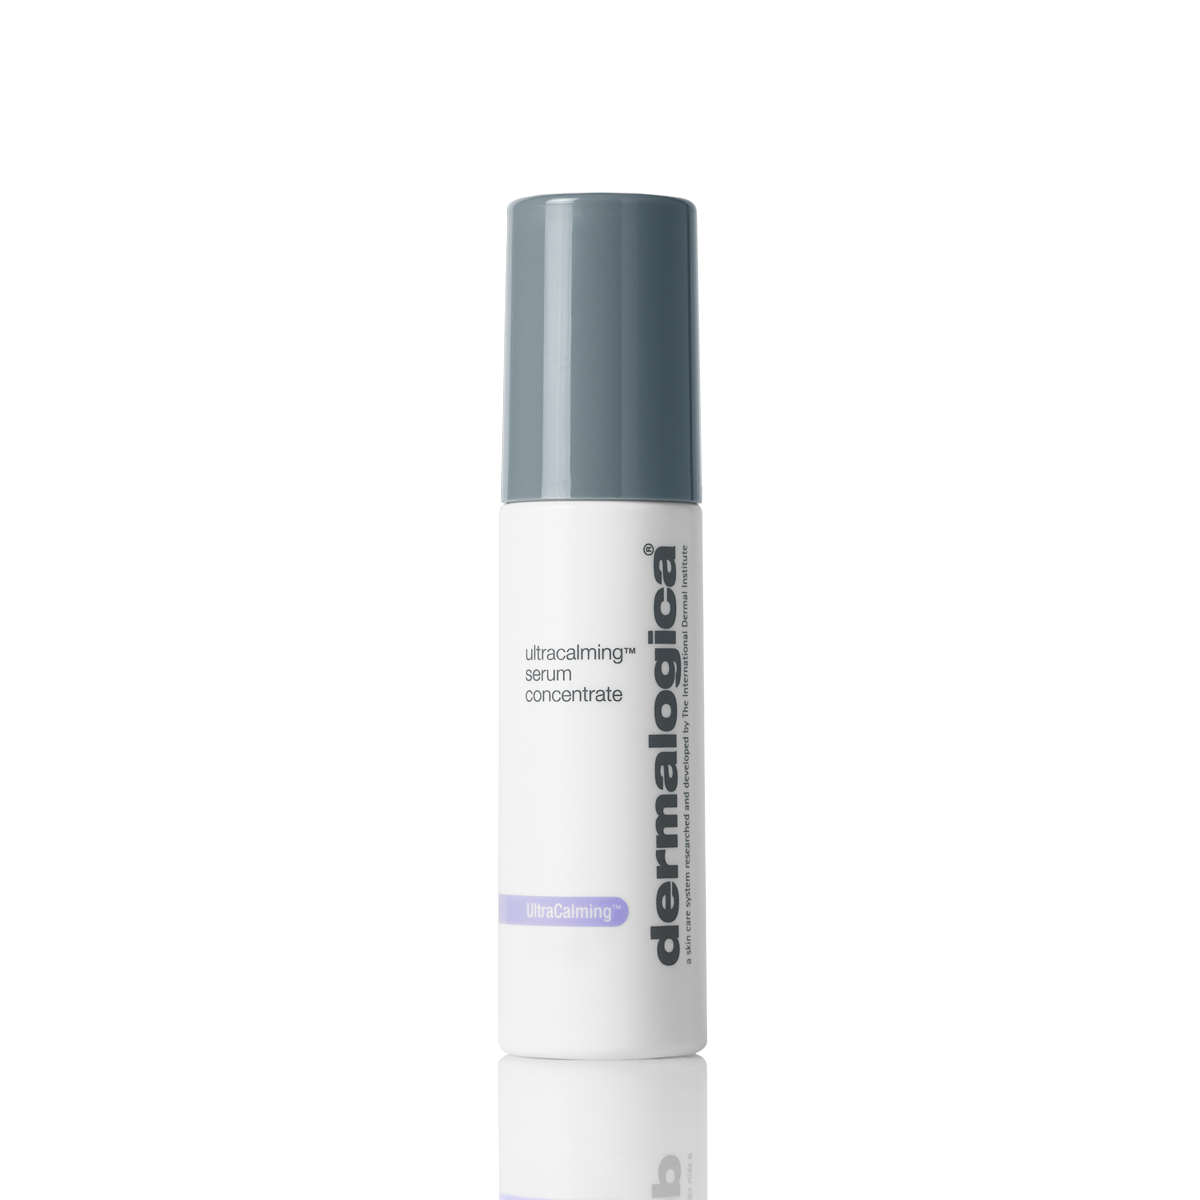 UltraCalming Serum Concentrate - 40ml-1